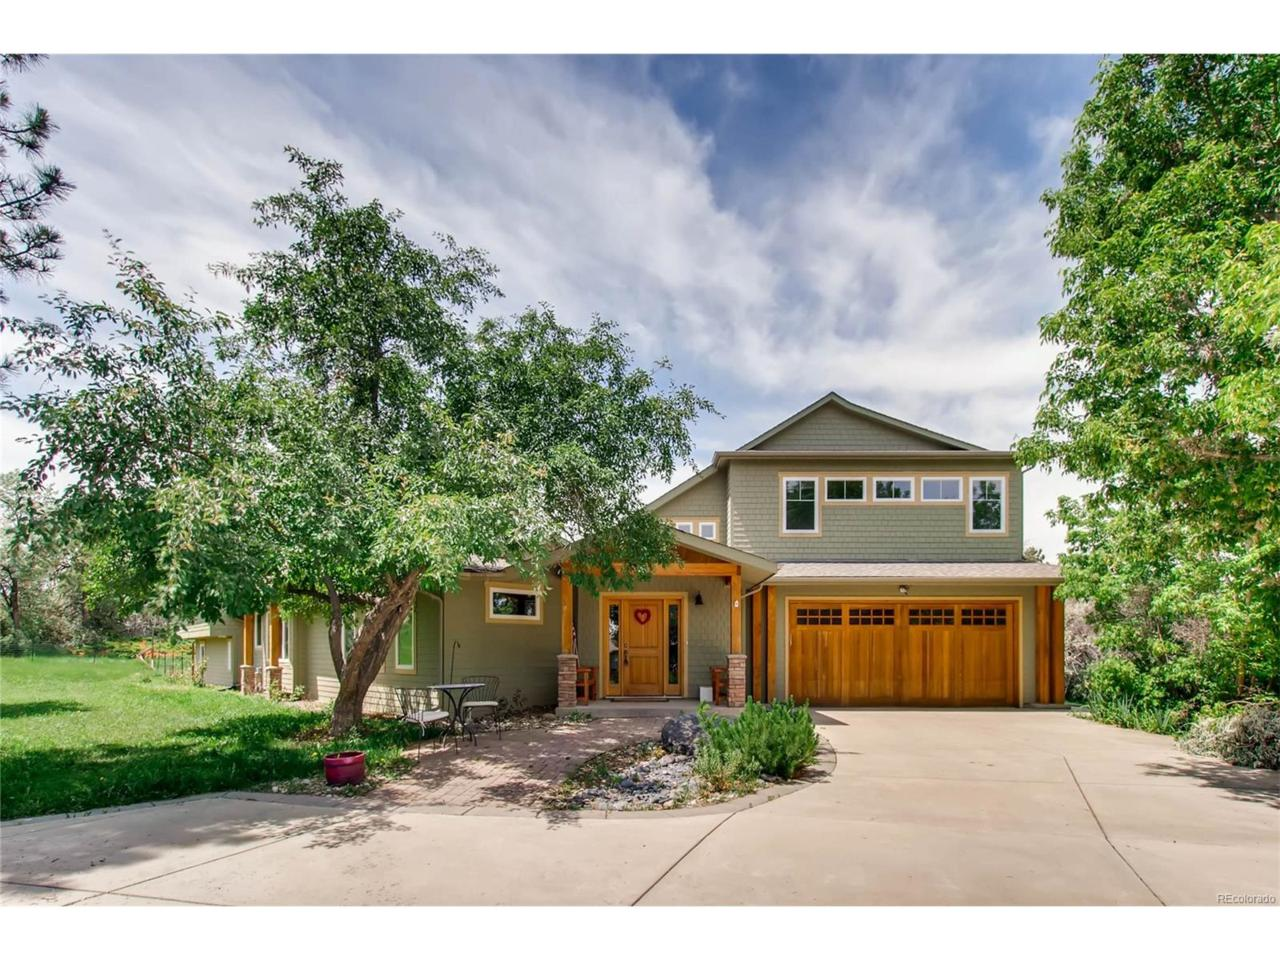 7103 Pine Cone Court, Niwot, CO 80503 (MLS #6740168) :: 8z Real Estate